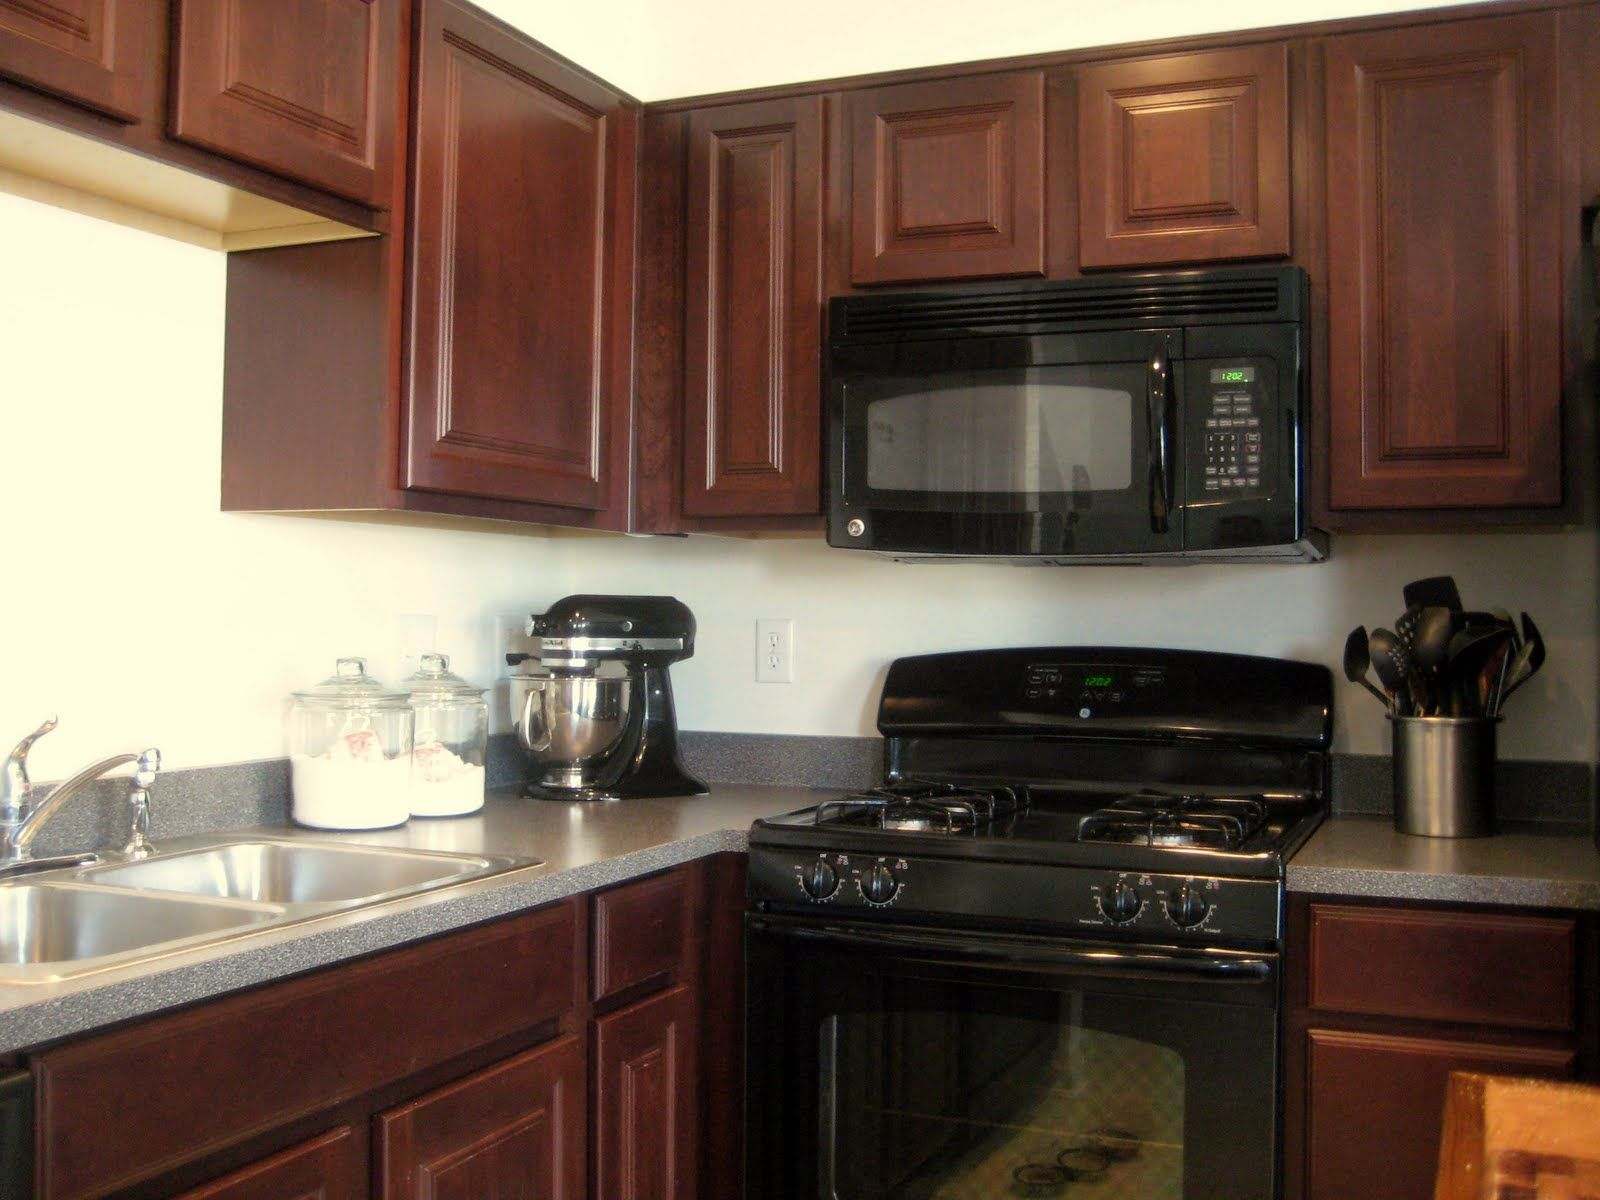 i like this look a lot! black appliances, cherry cabinets, and